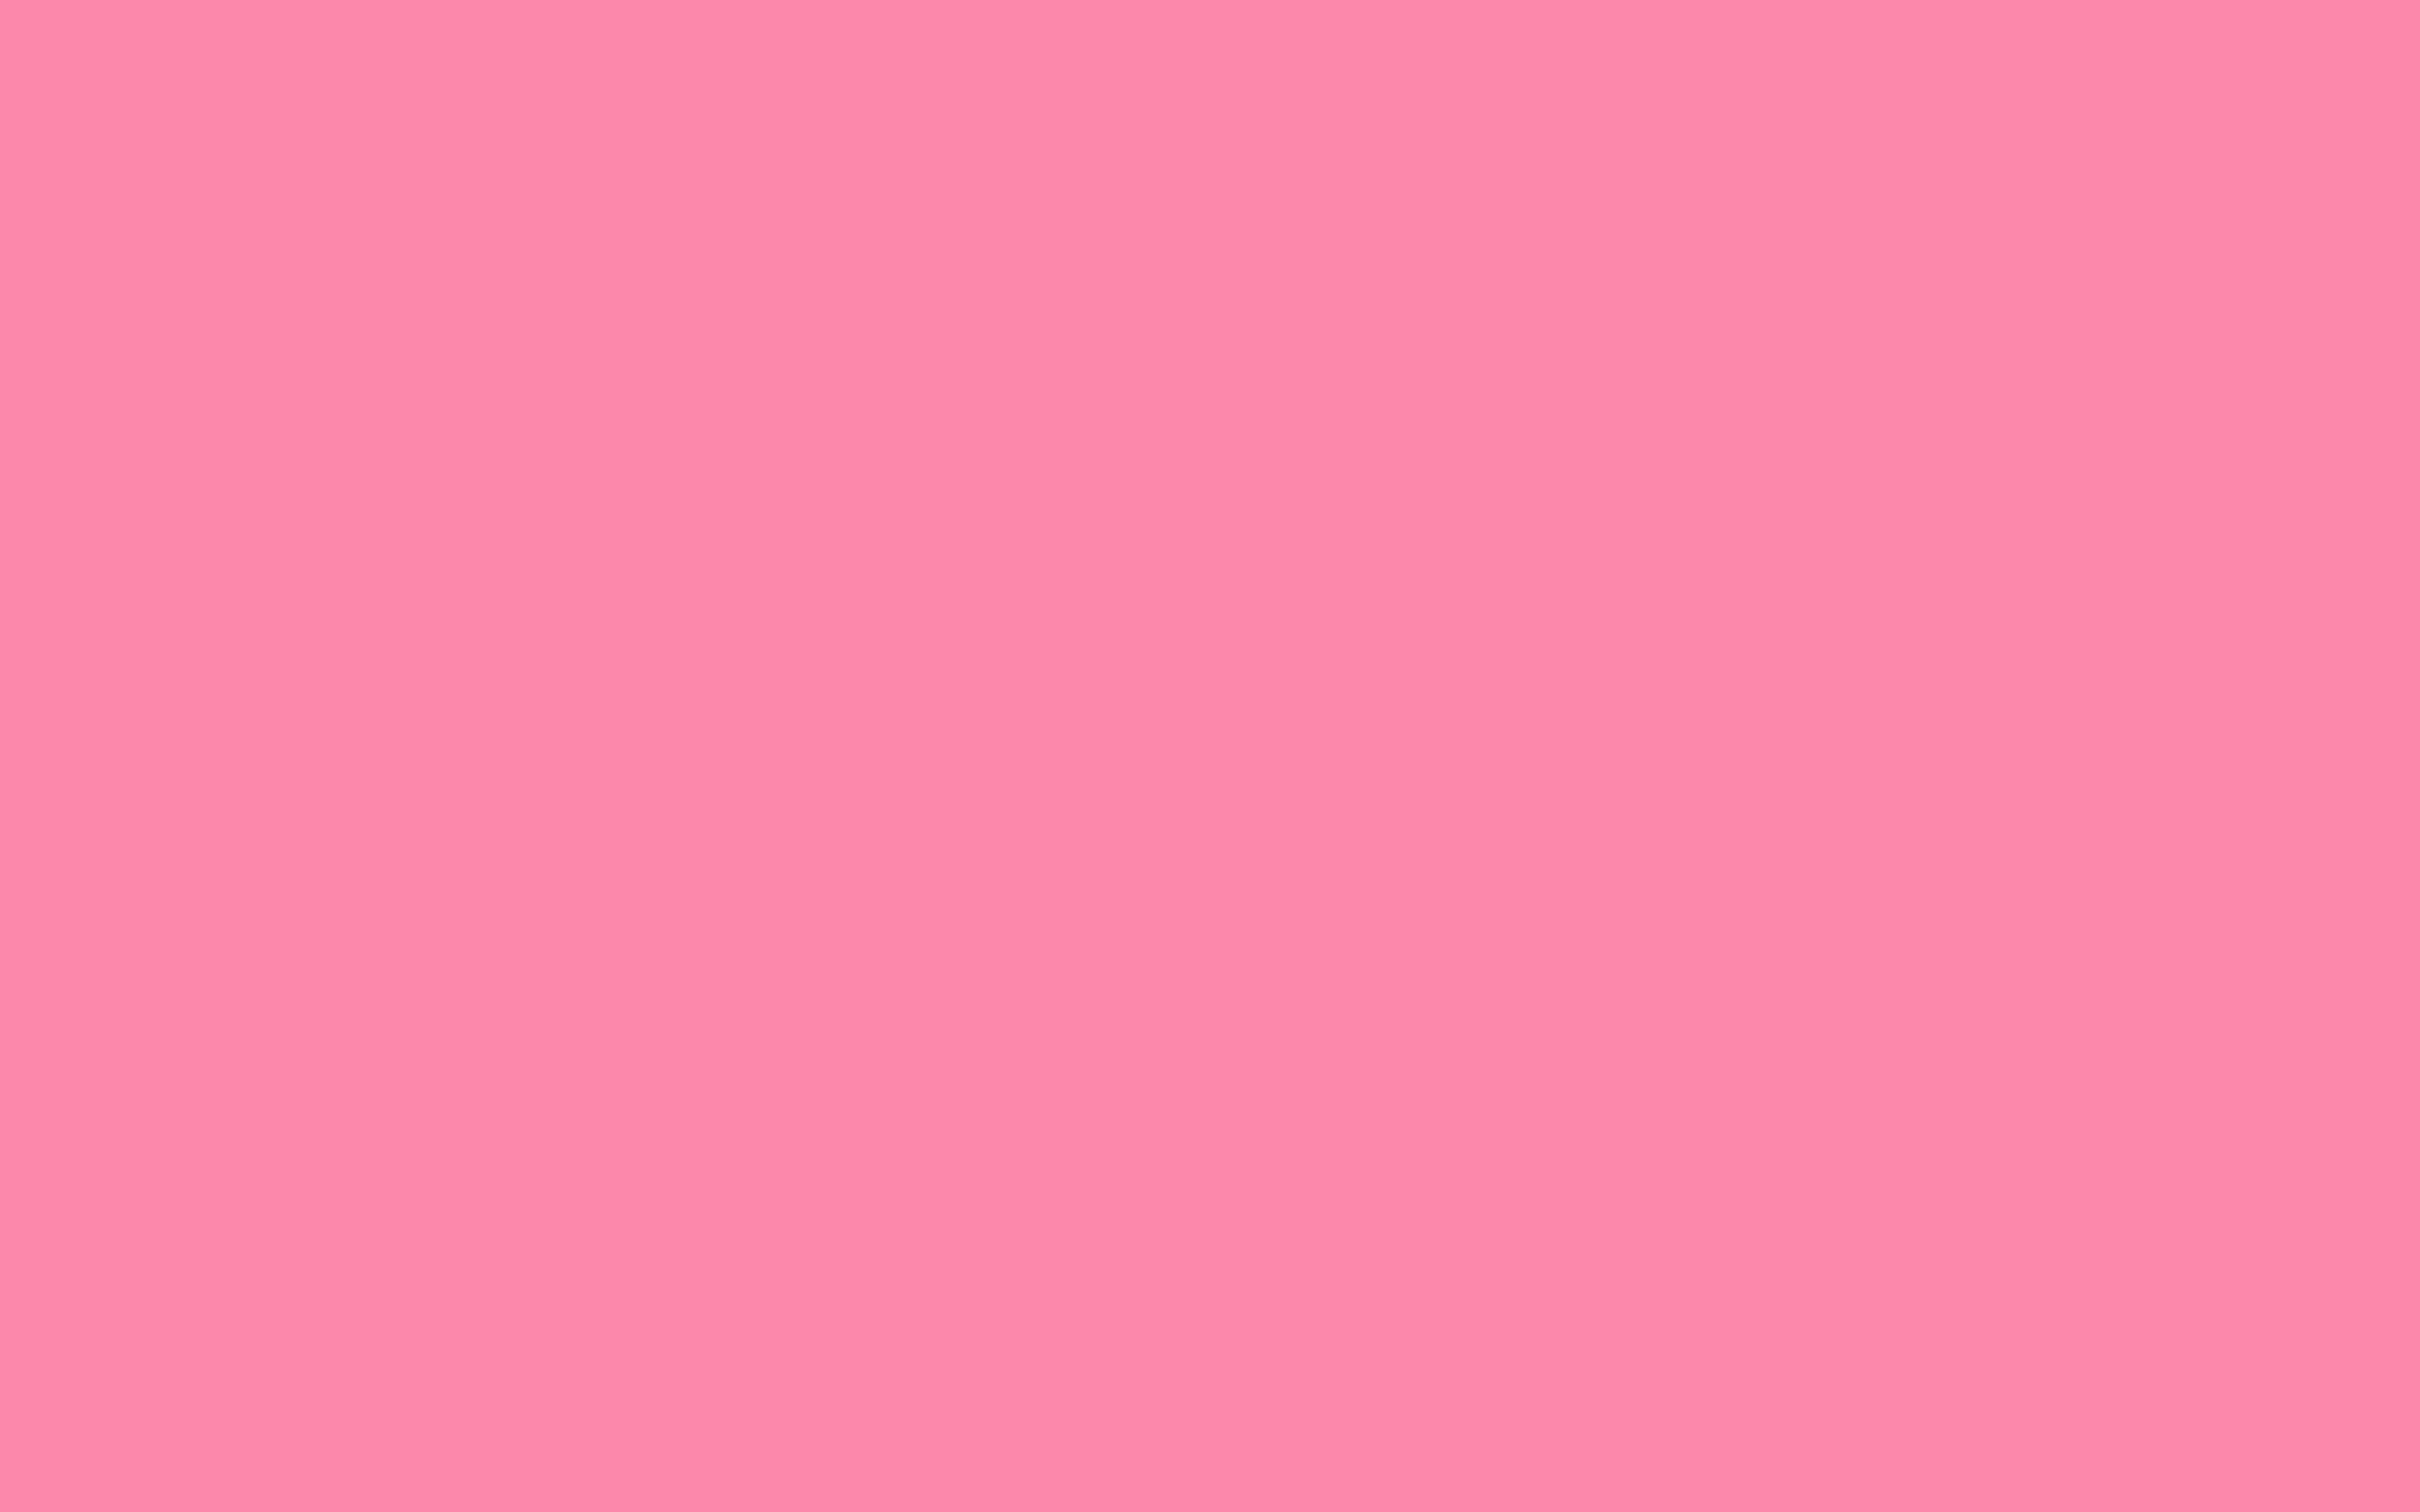 2560x1600 Tickle Me Pink Solid Color Background